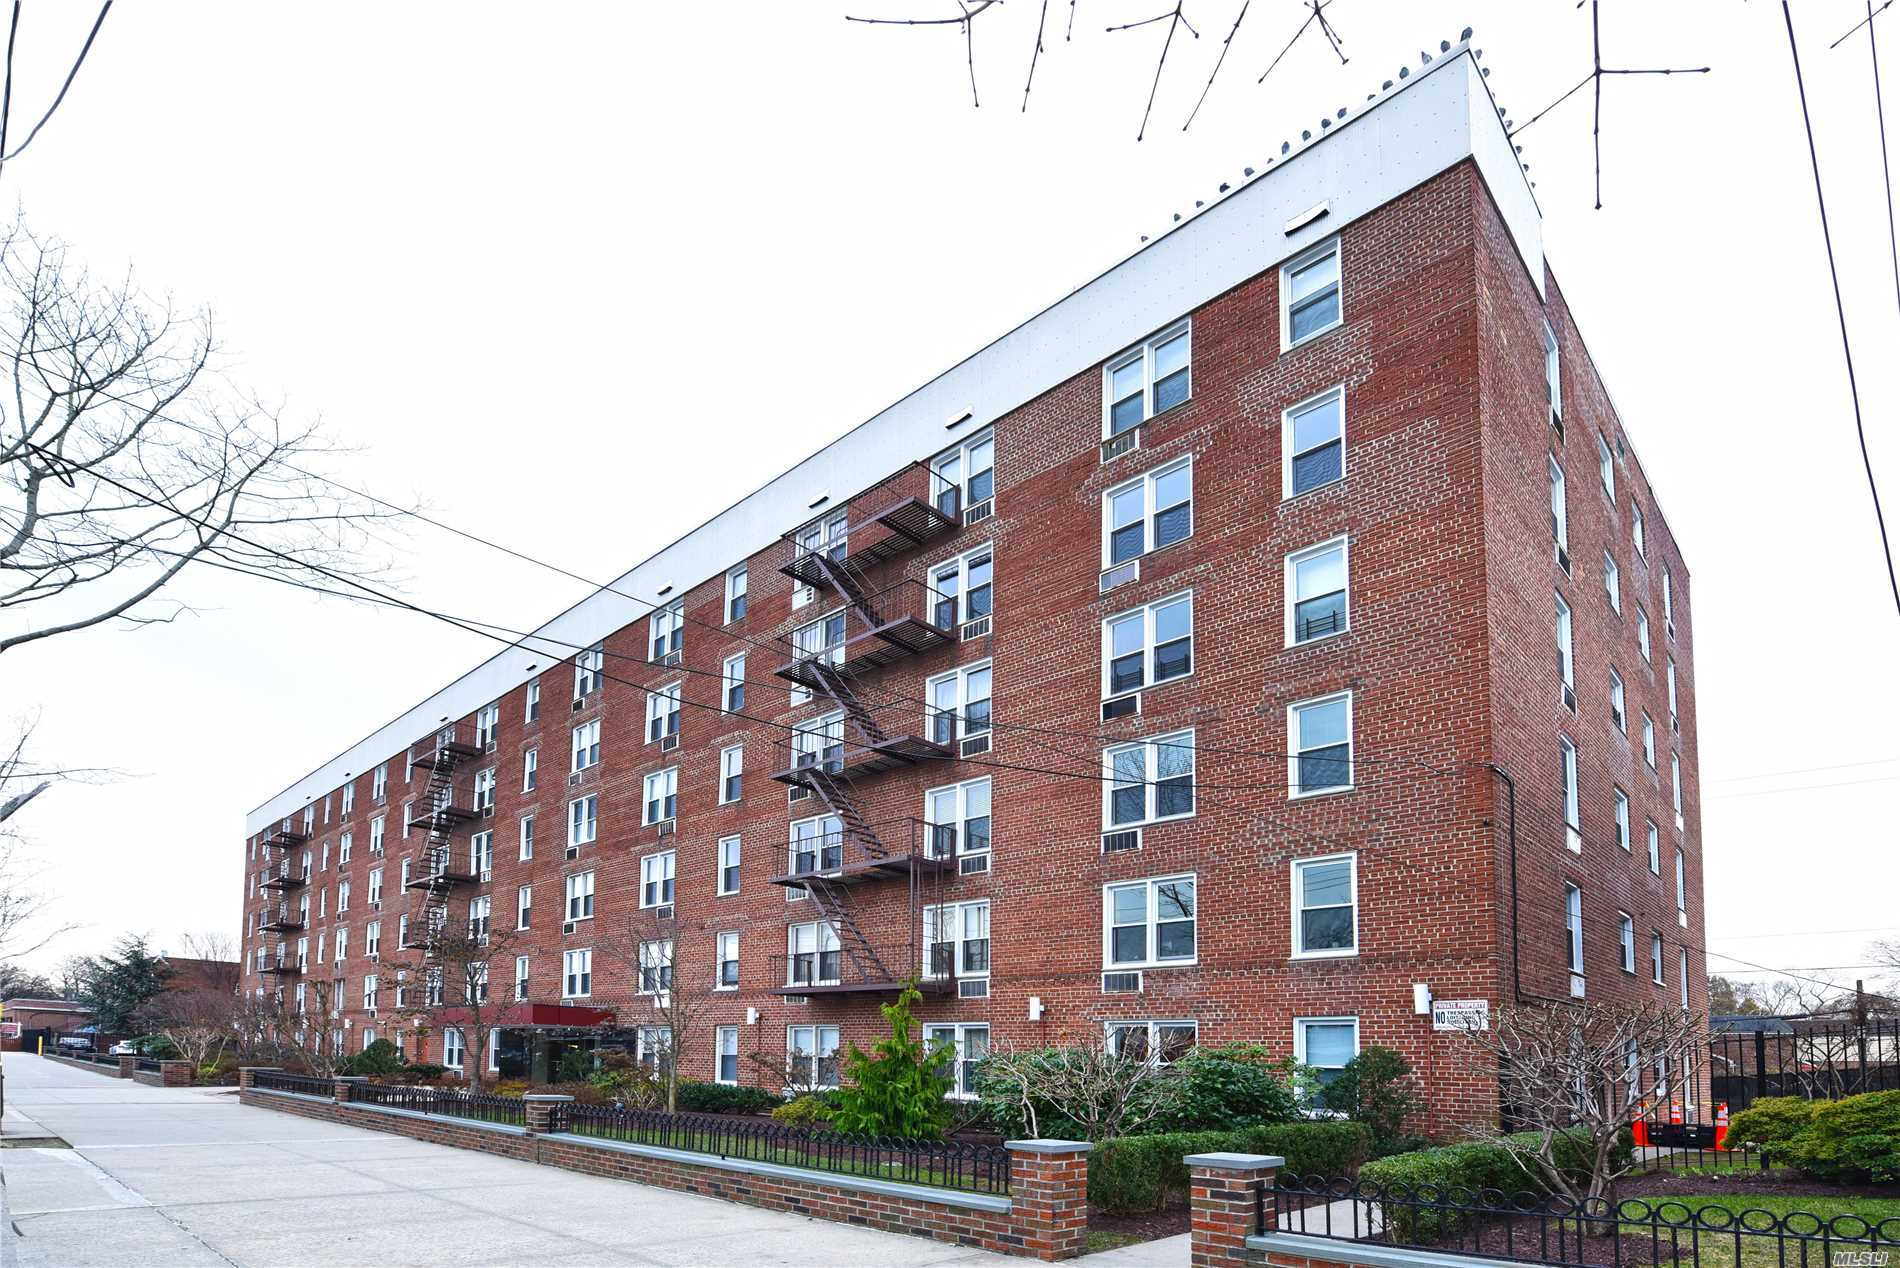 Commuter's Dream! Only One Block To Bell Blvd's Lirr & Just 20 Mins To Penn Station. Spacious & Bright Jr4/ 2 Bedroom. Large Living Room/Dinning Combo. Hardwood Flooring. Huge Master Bedroom With Double Closet. Unit Faces Front Of Building. Located Perfect In The Heart Of Bayside's Bell Blvd With All The Best In Shopping, Eateries & Lounges. Nearby Express Bus(Qm3), Local Buses Q13(To Flushing) & Q31. School District #26. Immaculate Building, Very Well Maintained. Move-In Ready!